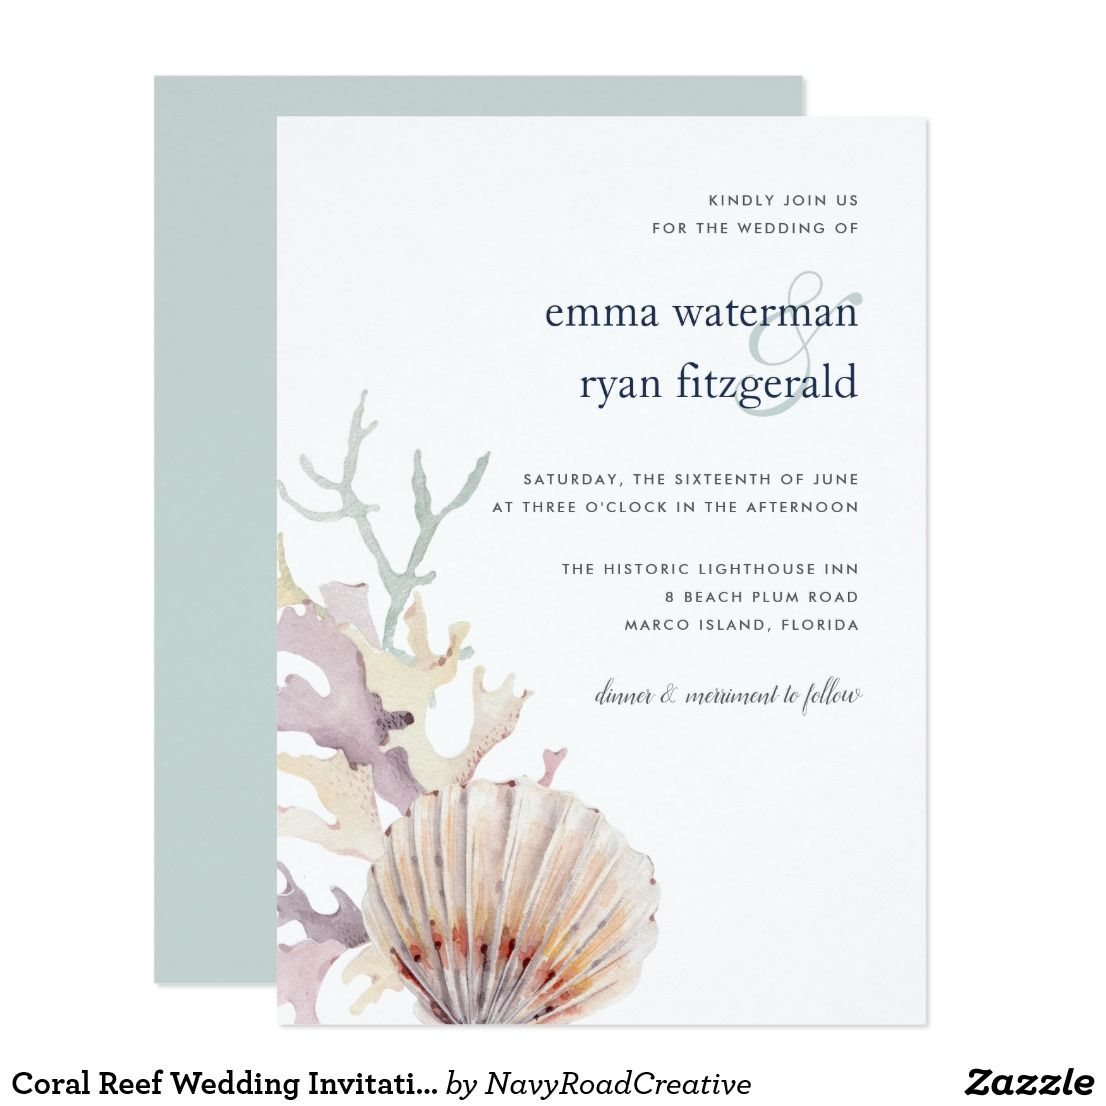 Coral Reef Wedding Invitation   Coral reefs, Invites wedding and ...